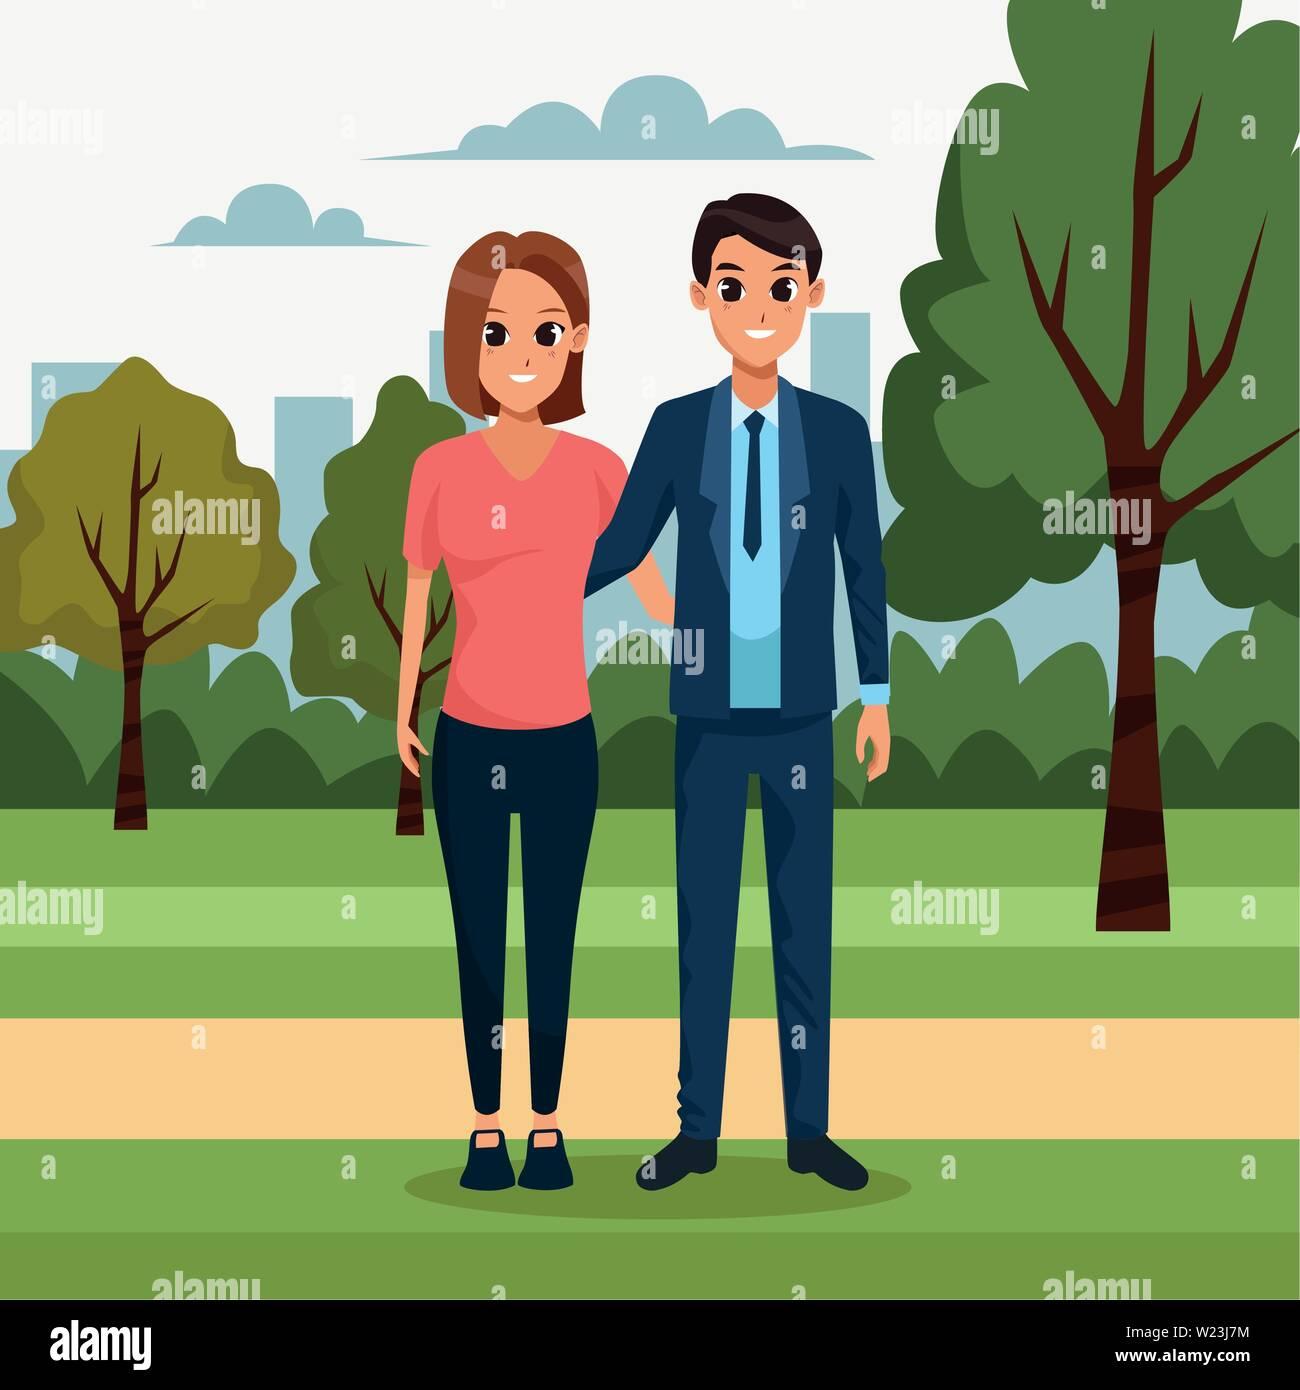 Young couple in the park scenery - Stock Vector